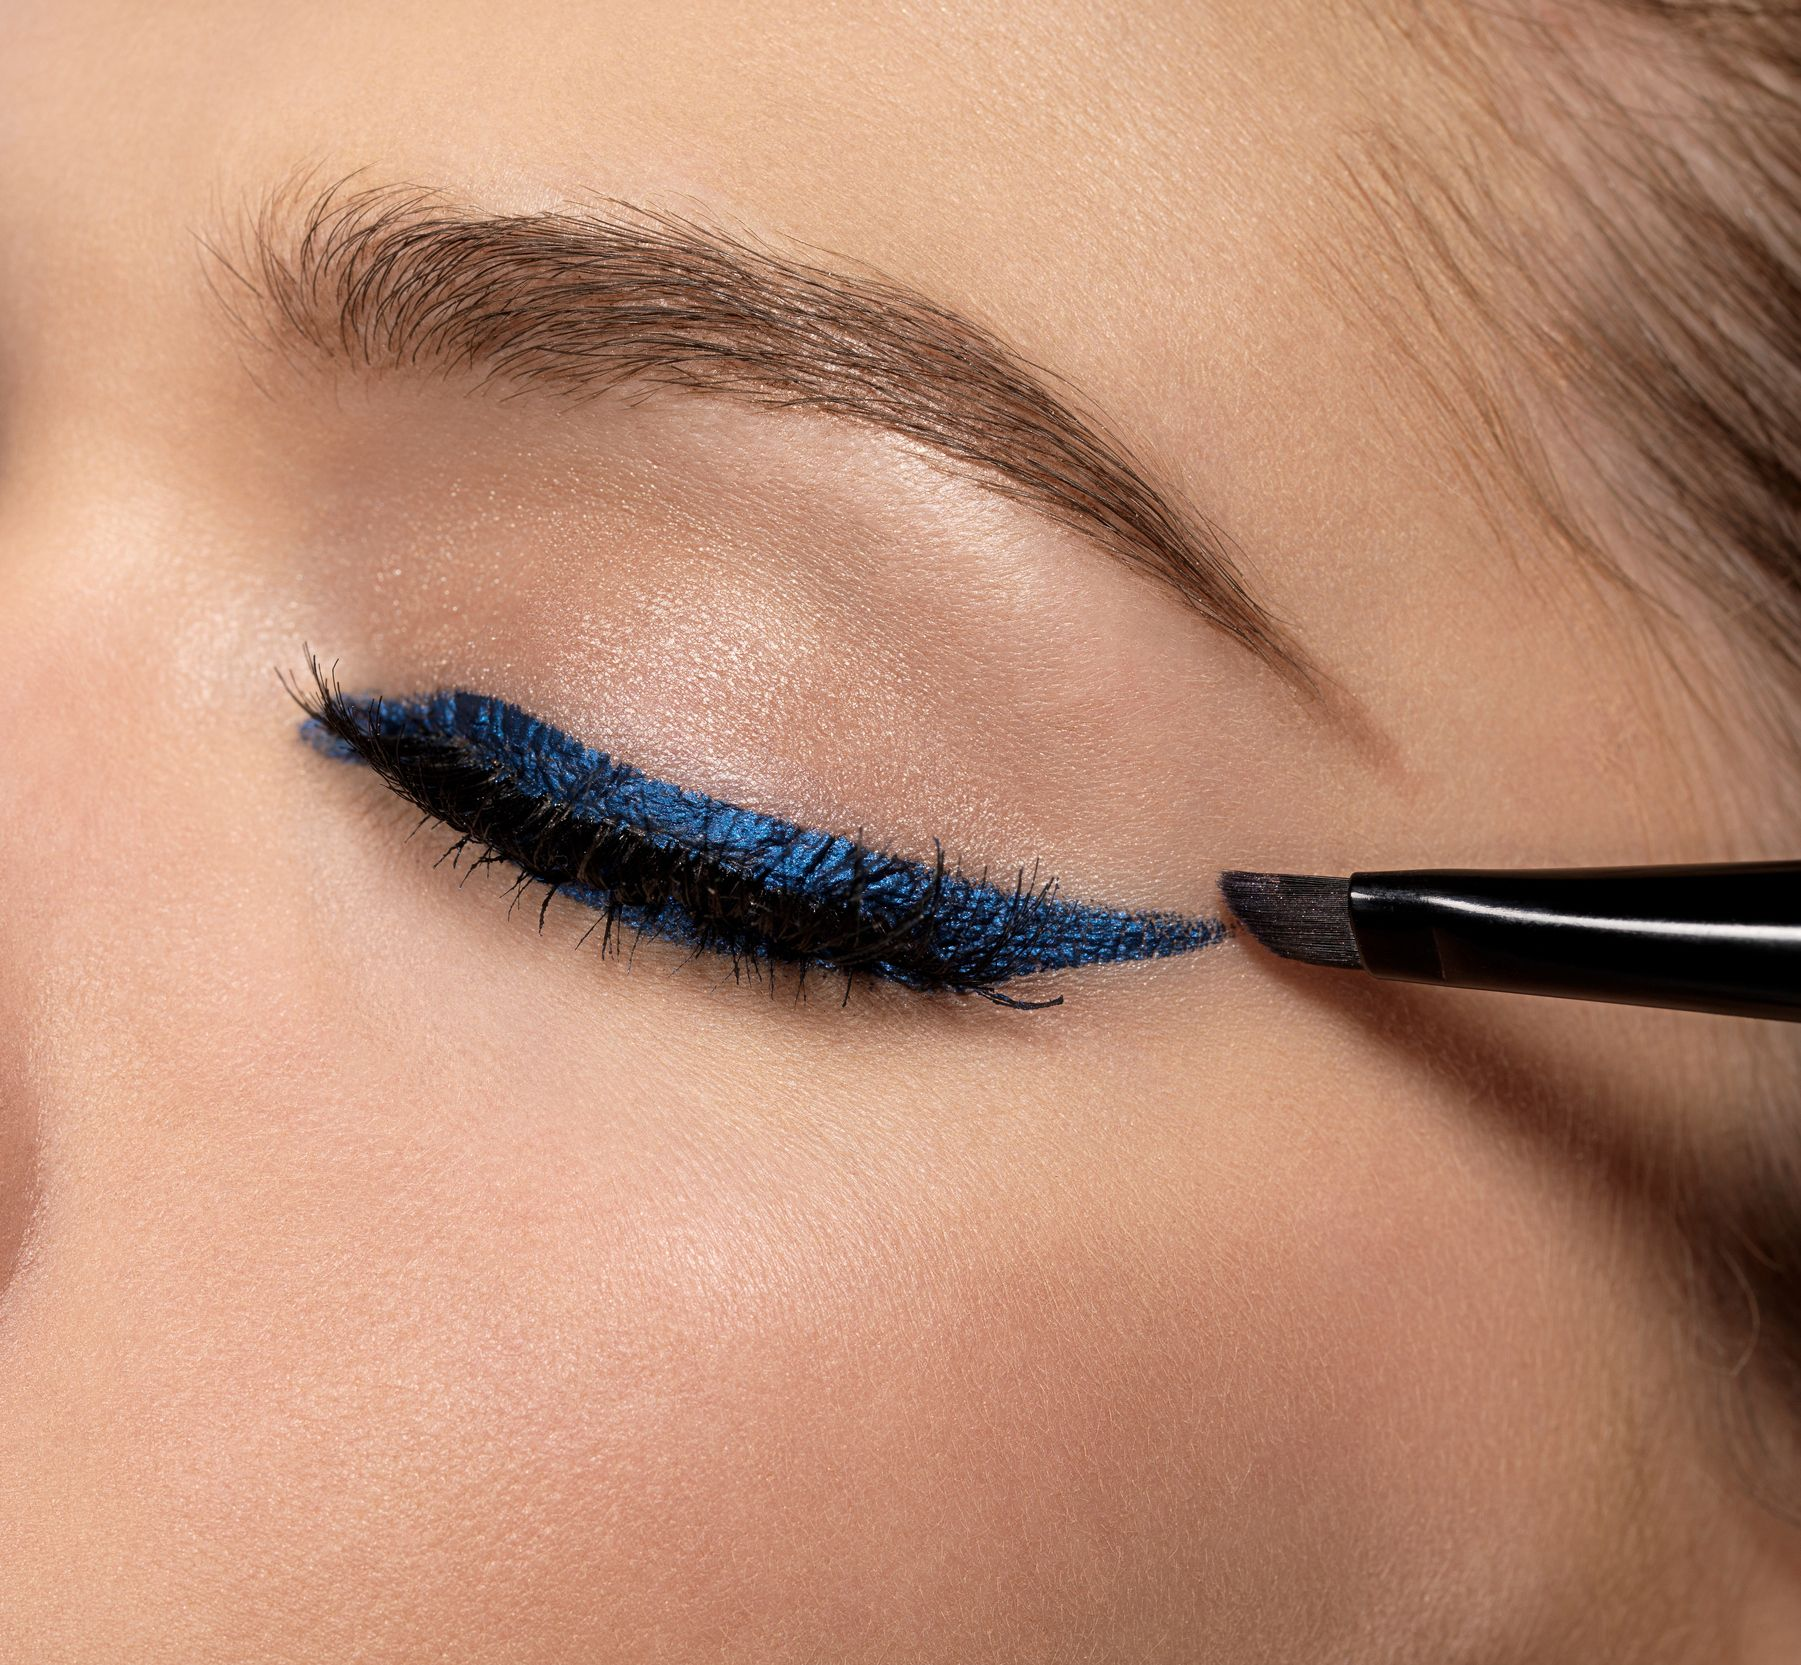 How to Apply Eyeliner Like a Pro - Step By Step Videos and Tips